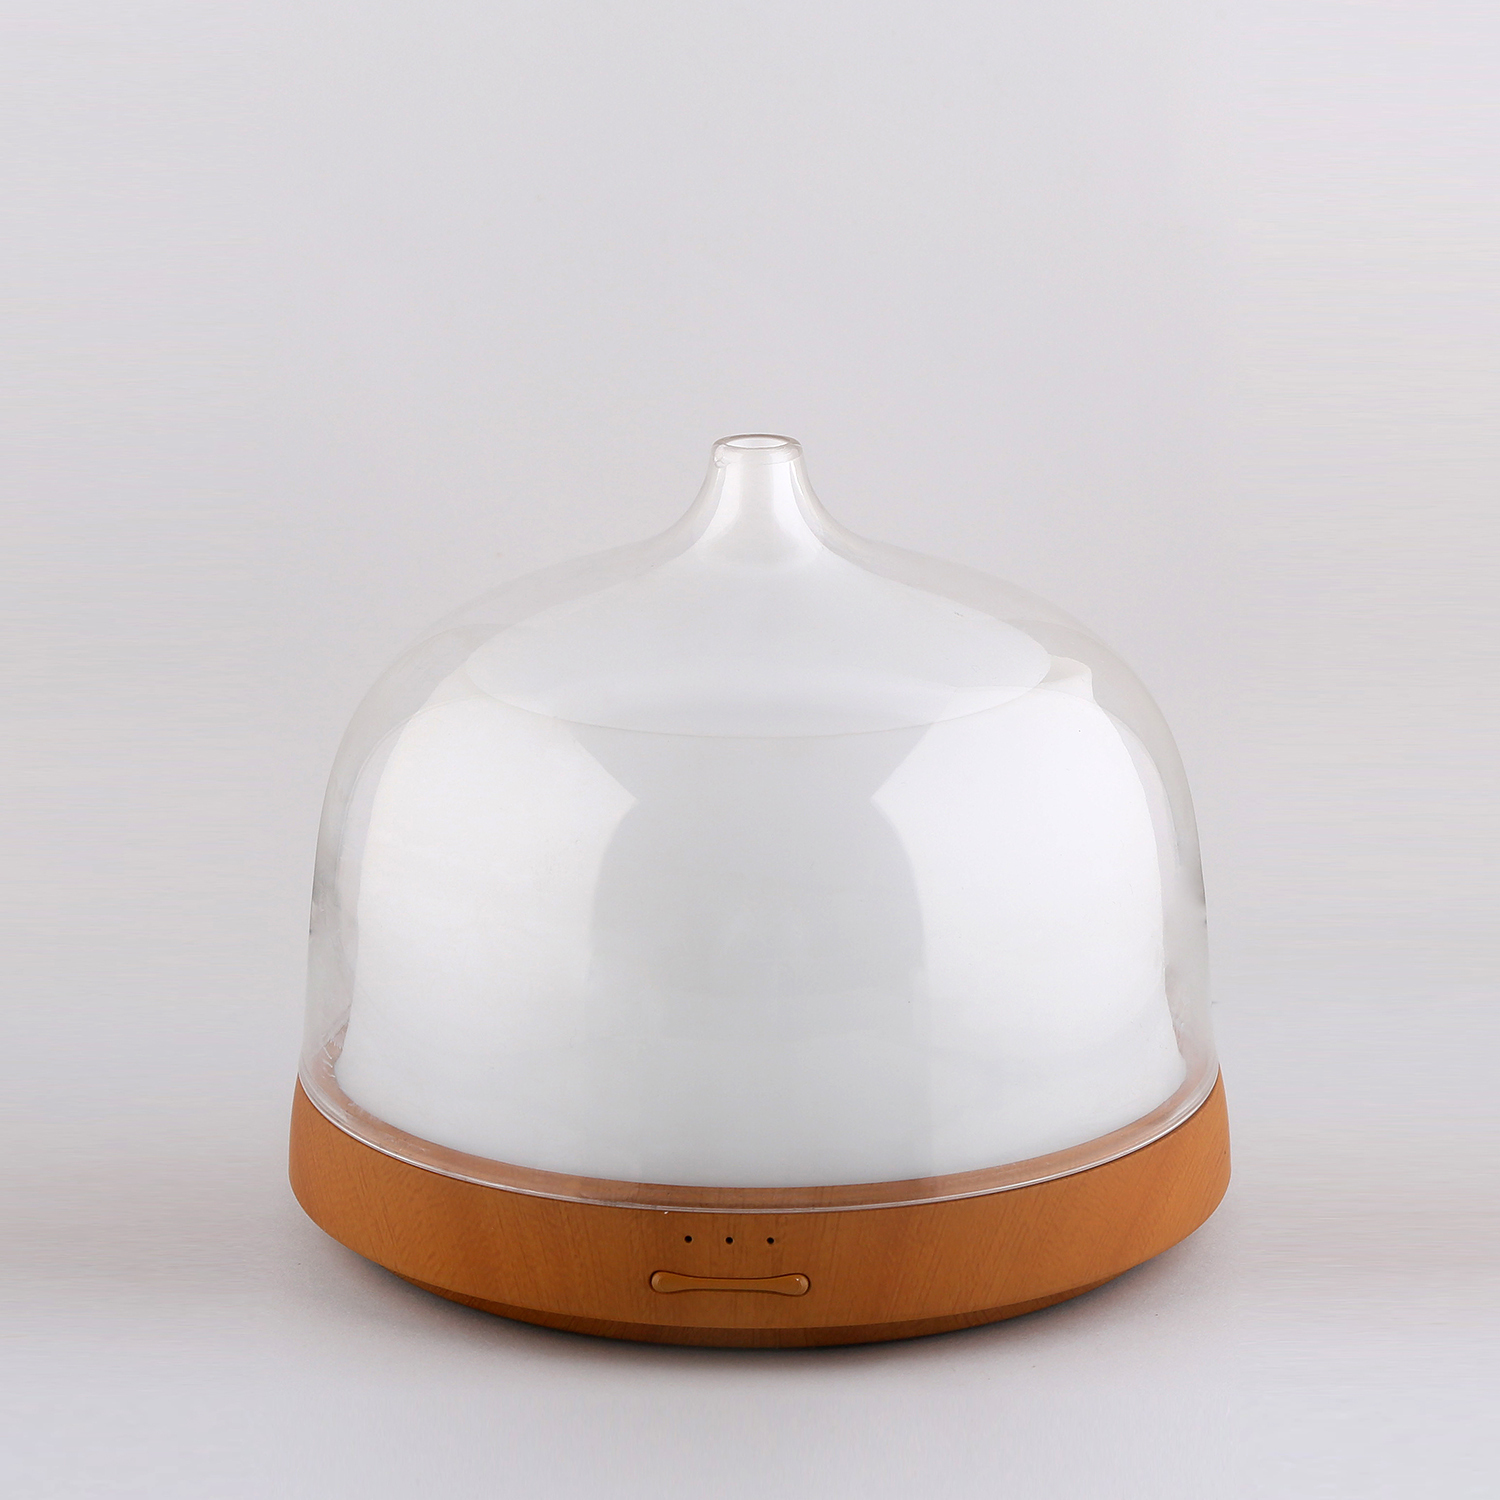 BSCI Manufacturer 200ml Wood Grain Humidifier